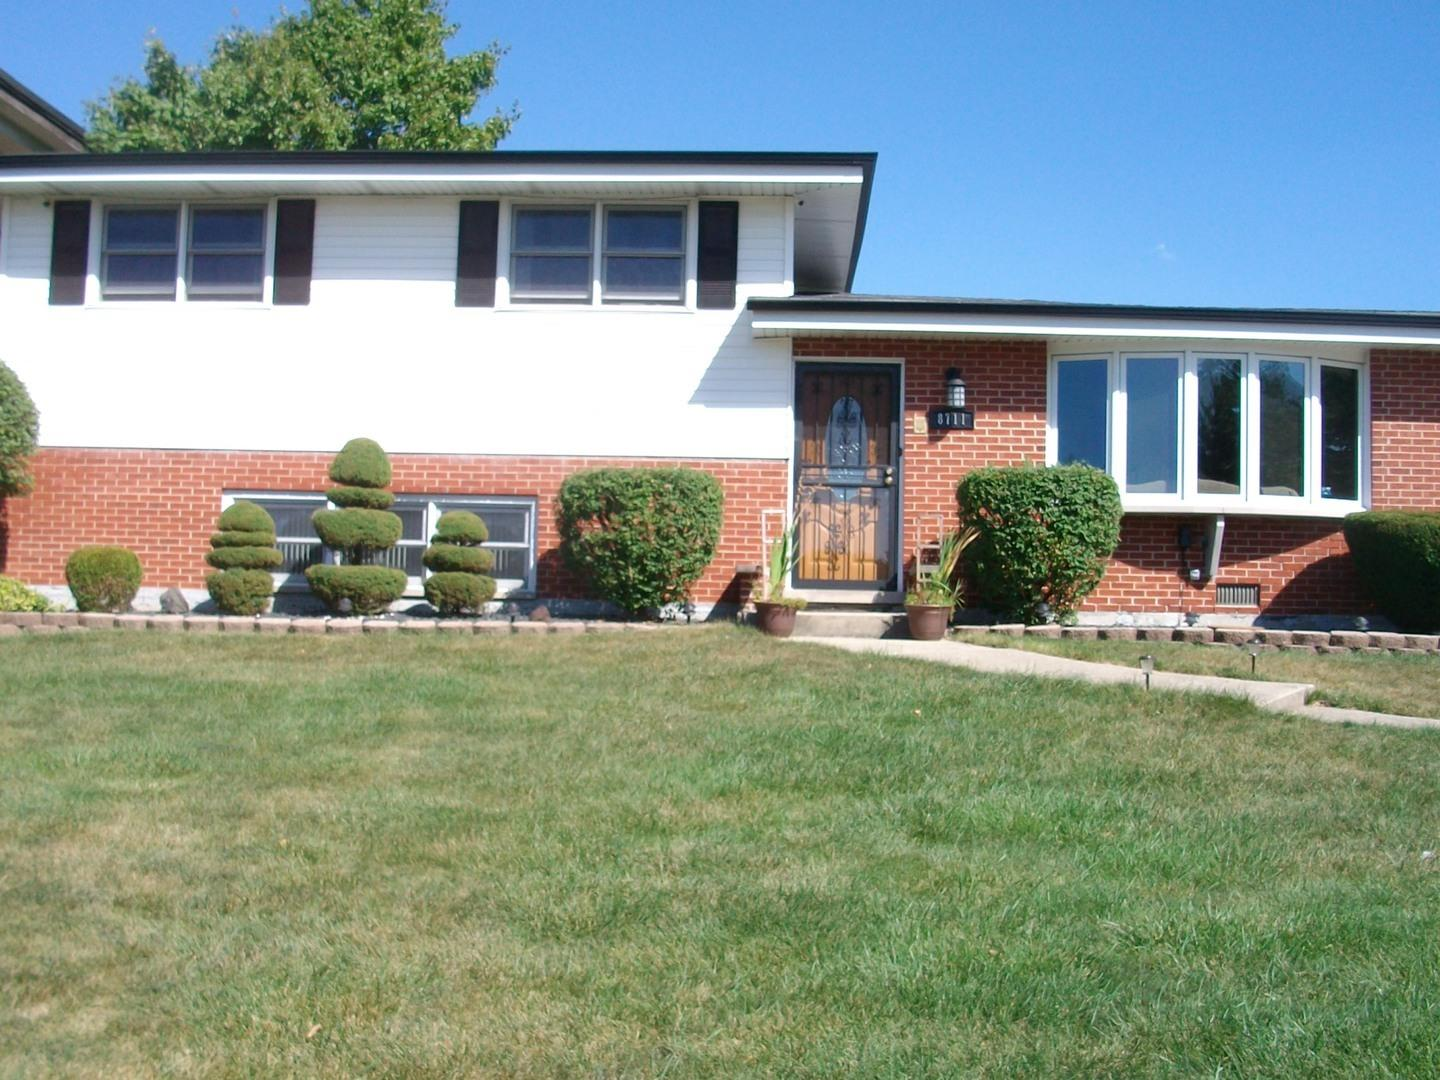 8711 S 81st Avenue, Hickory Hills, IL 60457 - #: 10826997